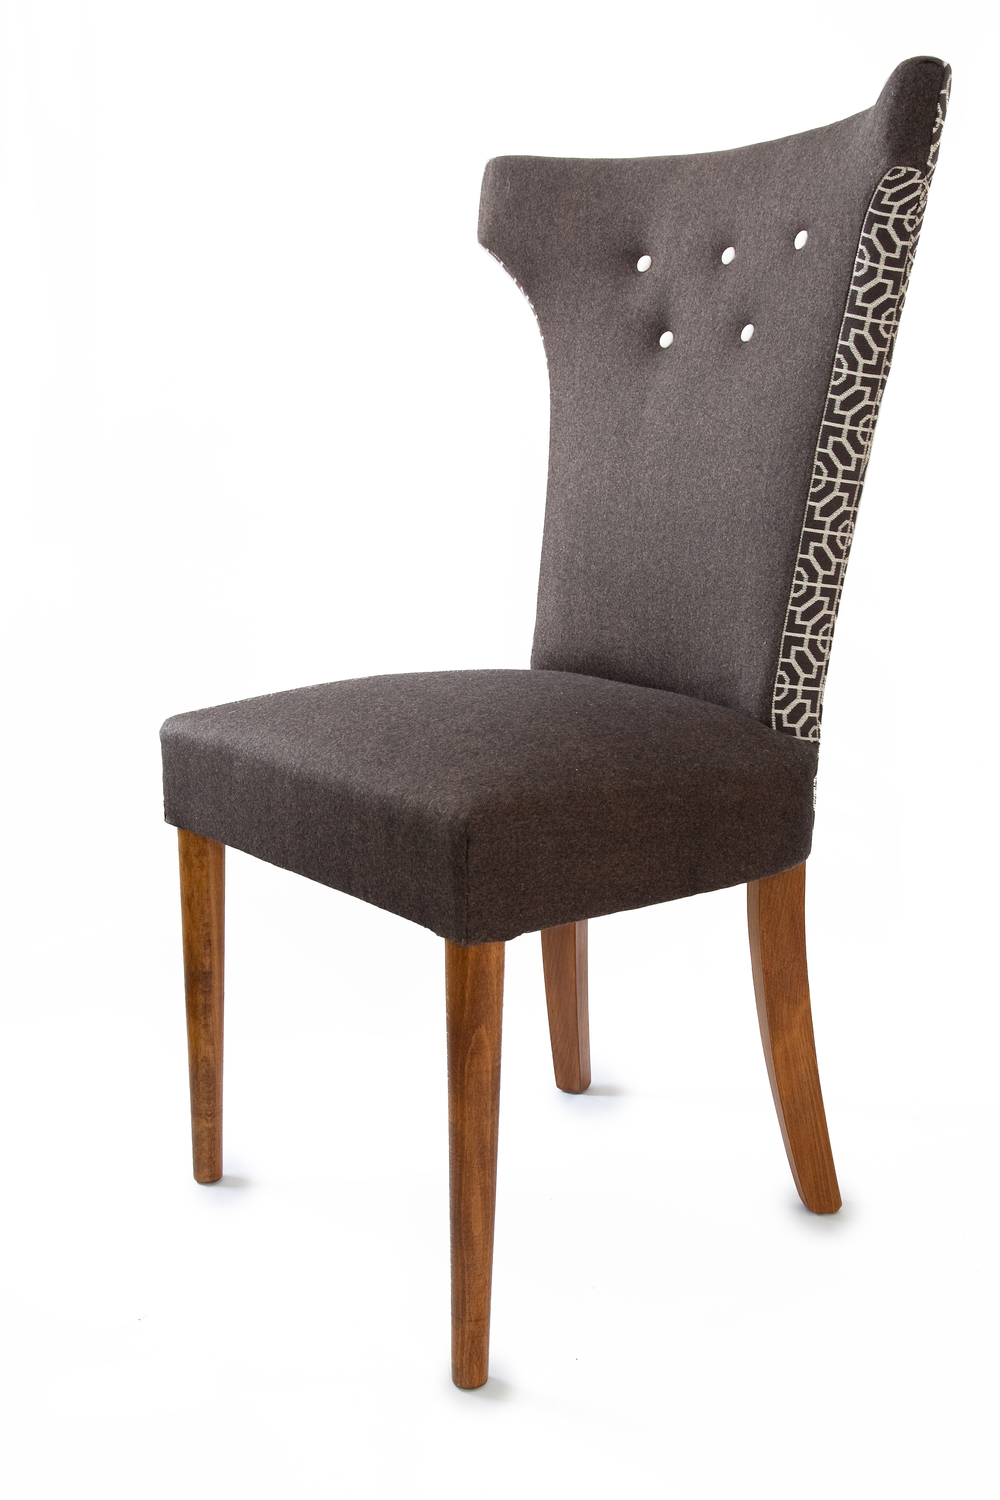 The Bespoke Chair Company Blog